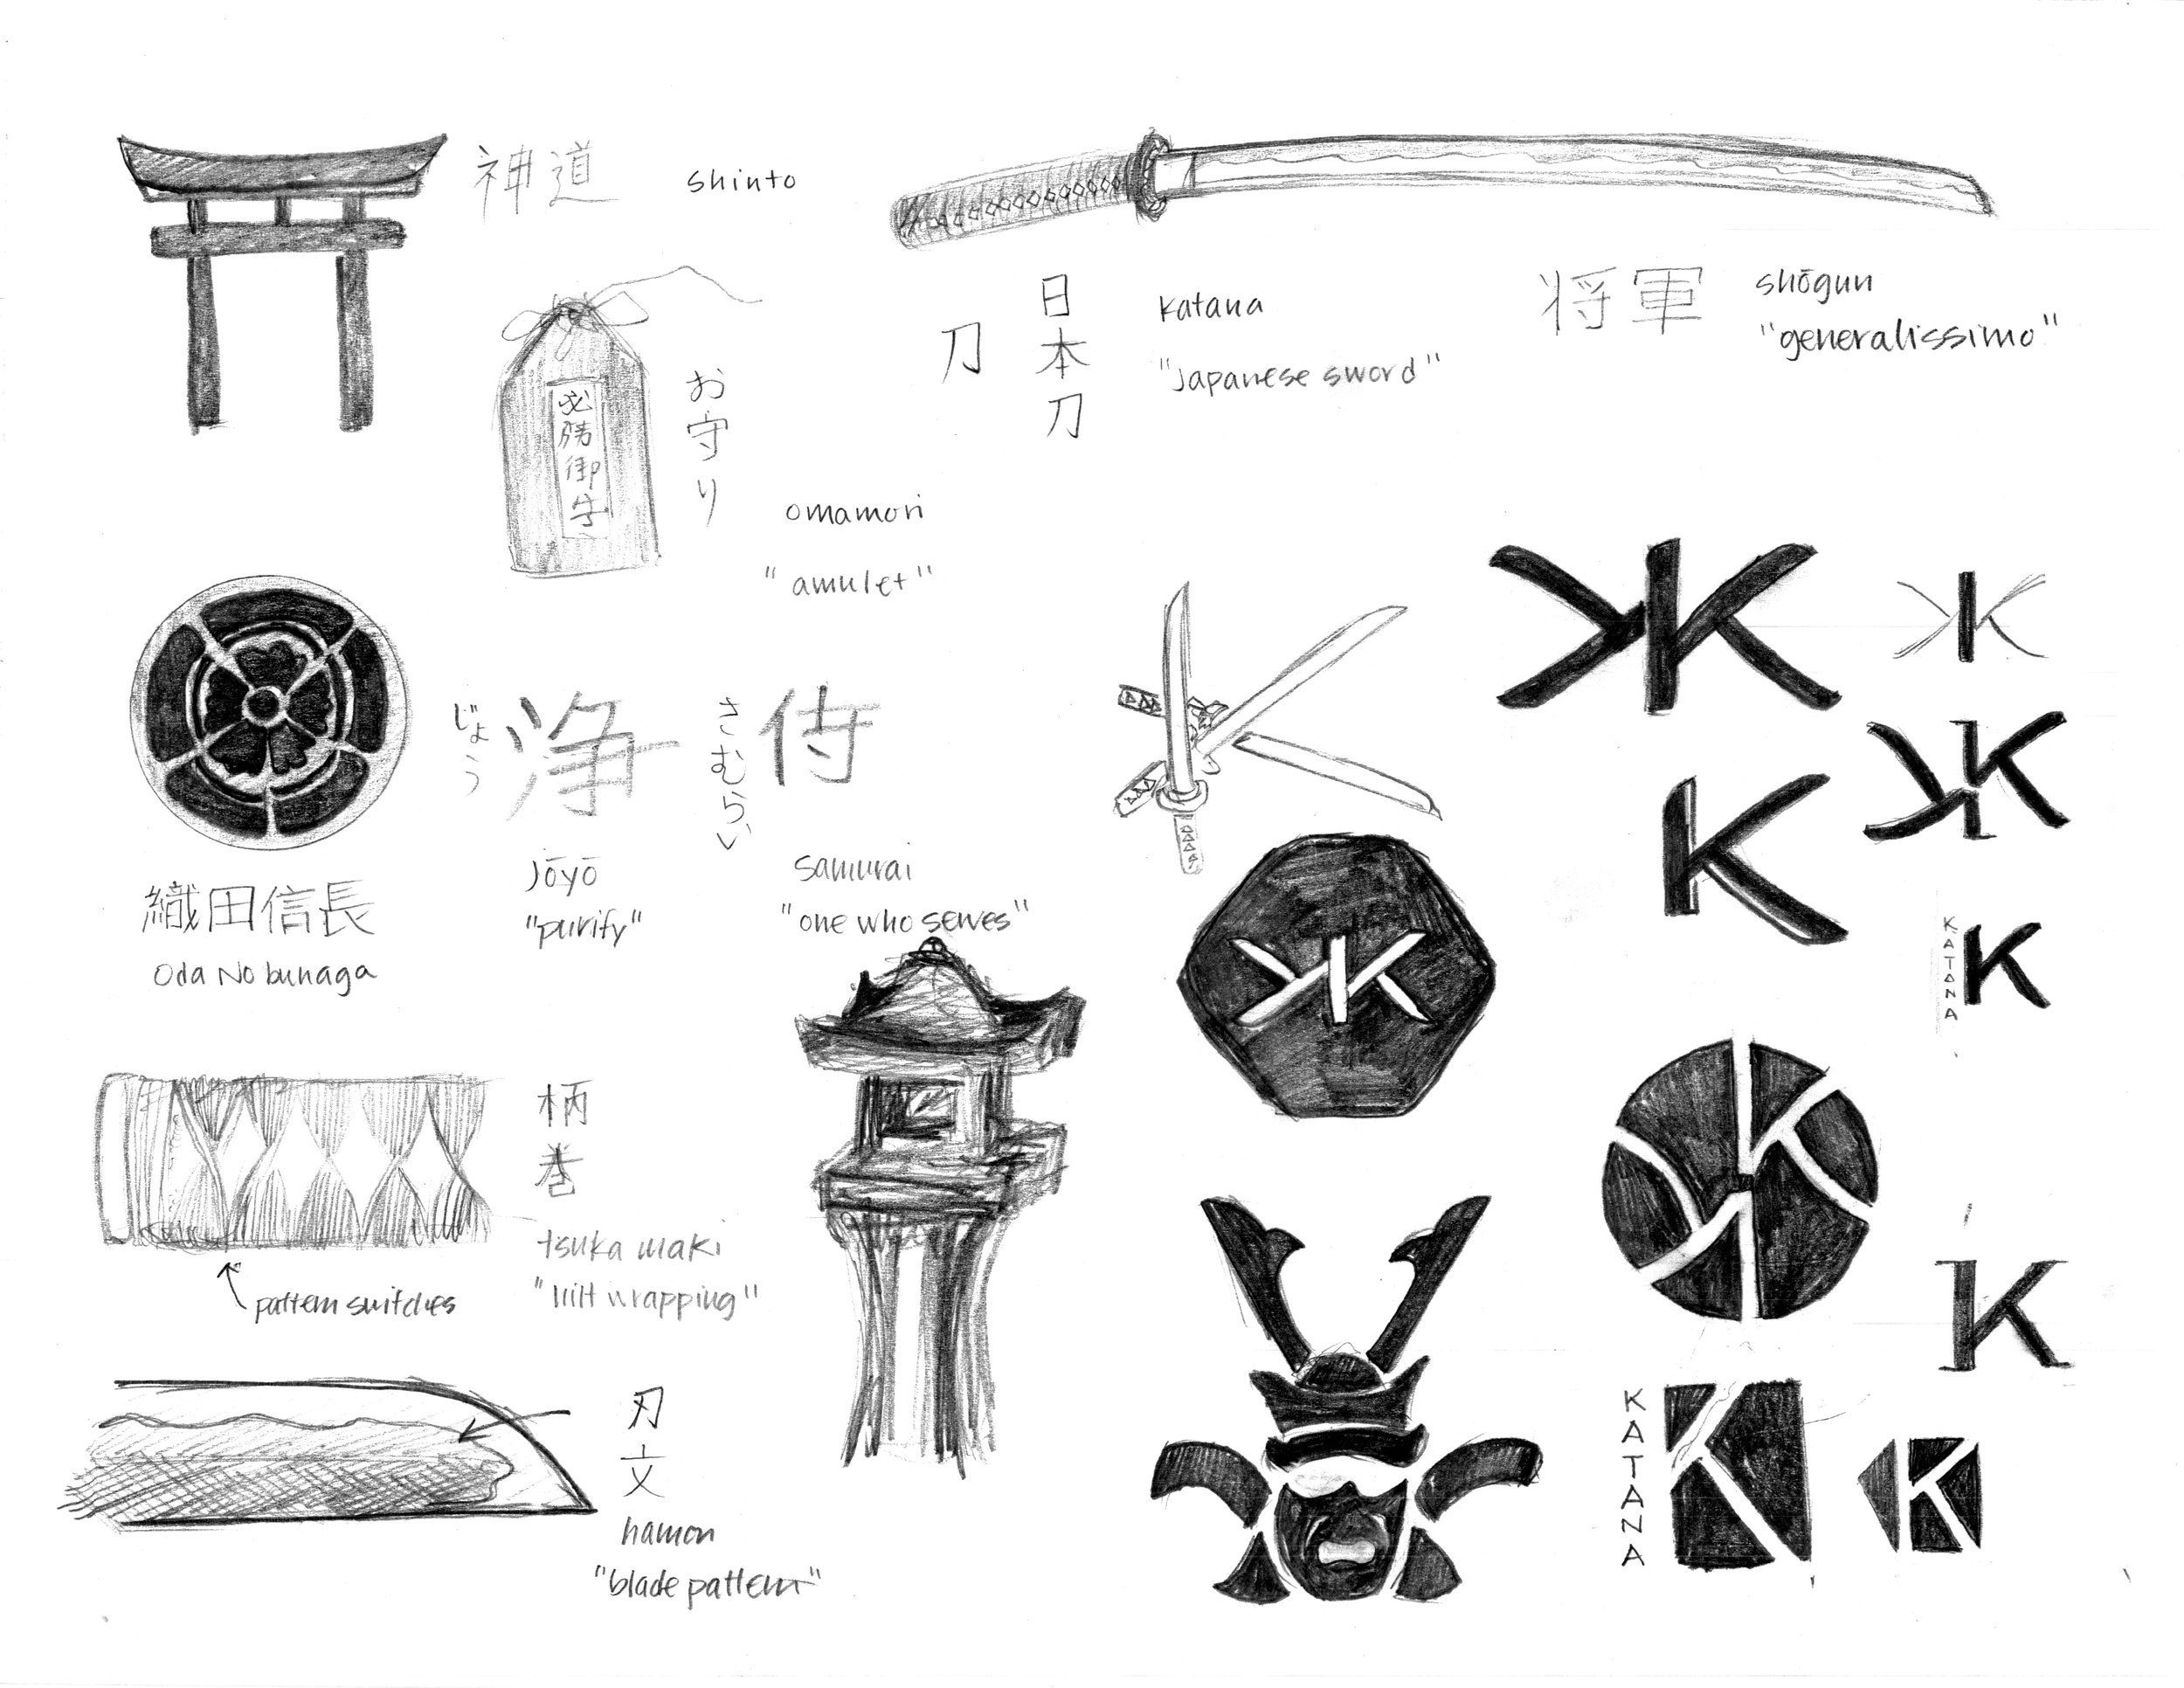 Sketches for identity, branding, iconography, and packaging.